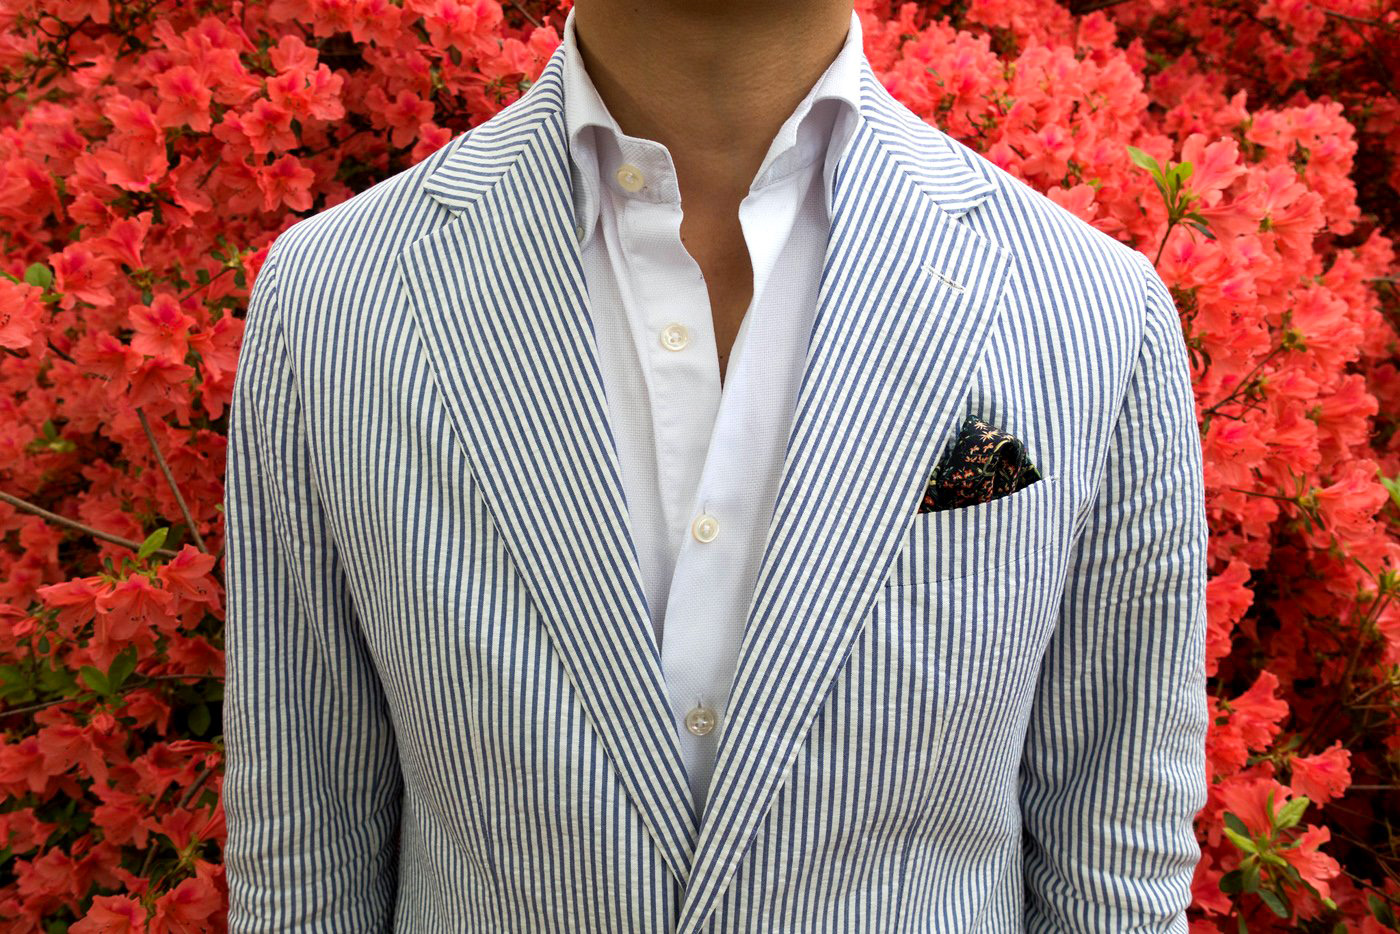 how to wear seersucker suit with a solid dress shirt